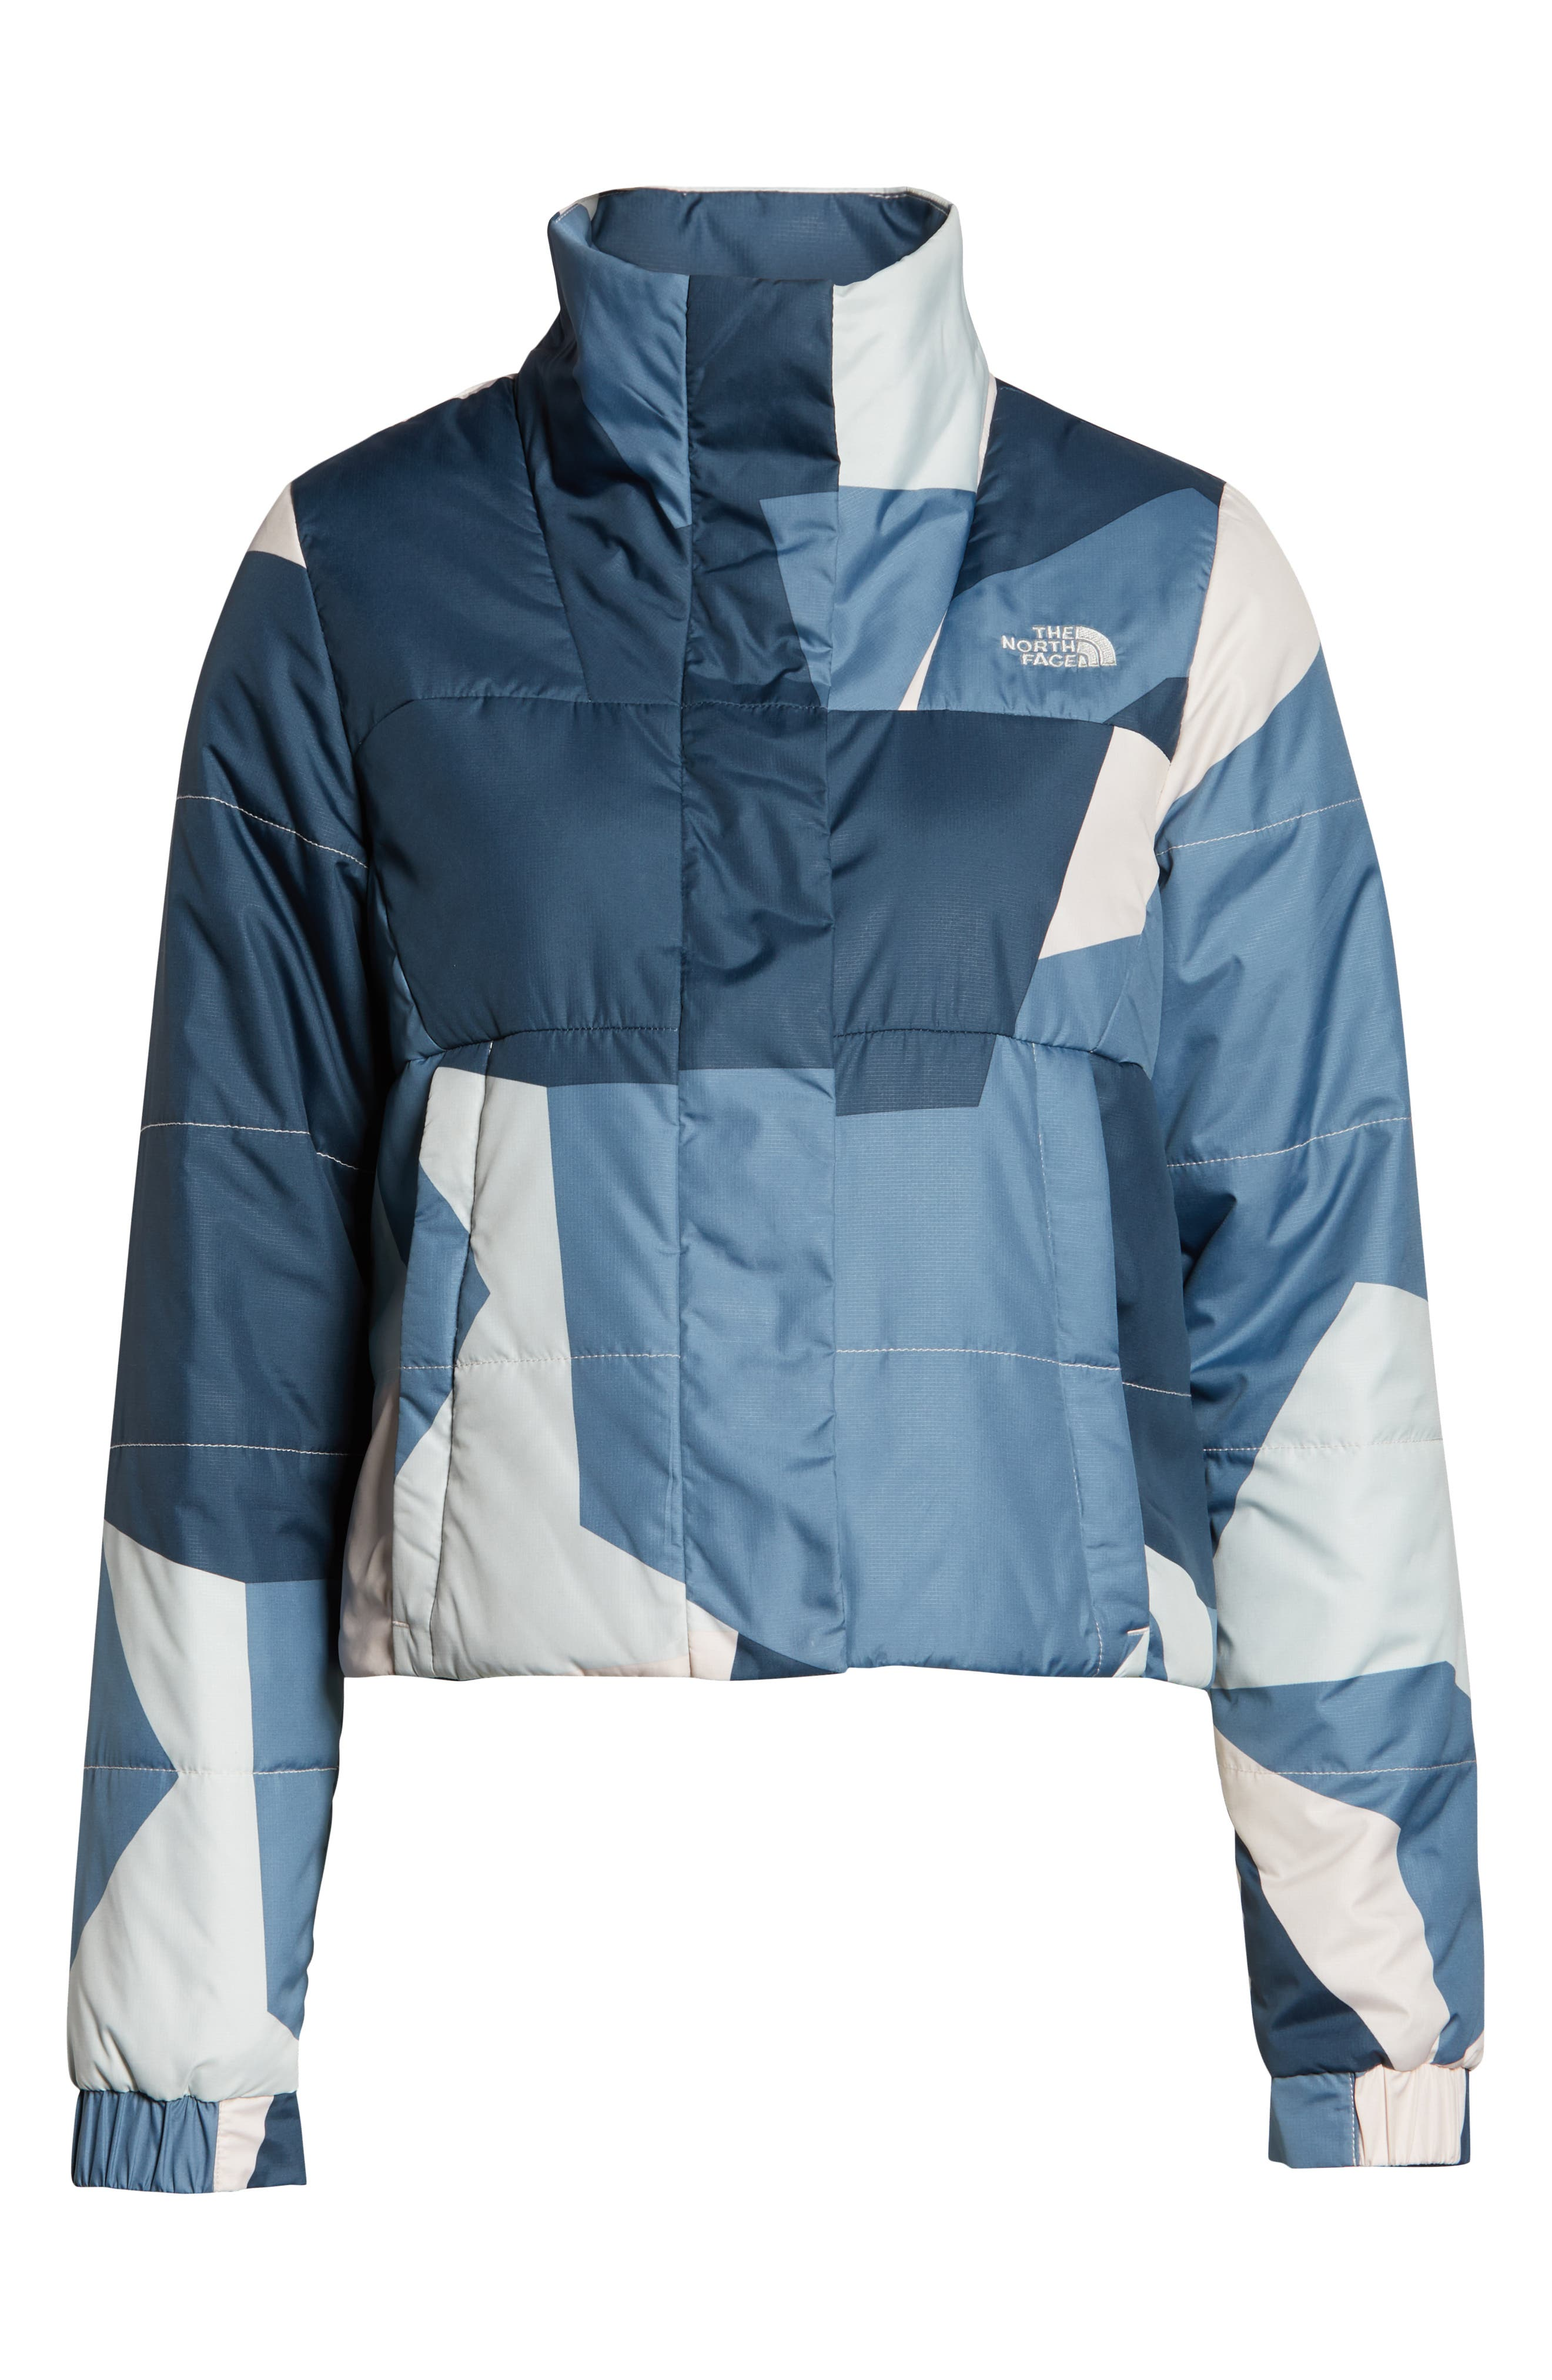 THE NORTH FACE, Femtastic Heatseeker Insulated Jacket, Alternate thumbnail 6, color, PINK MACRO SPLINTER CAMO PRINT